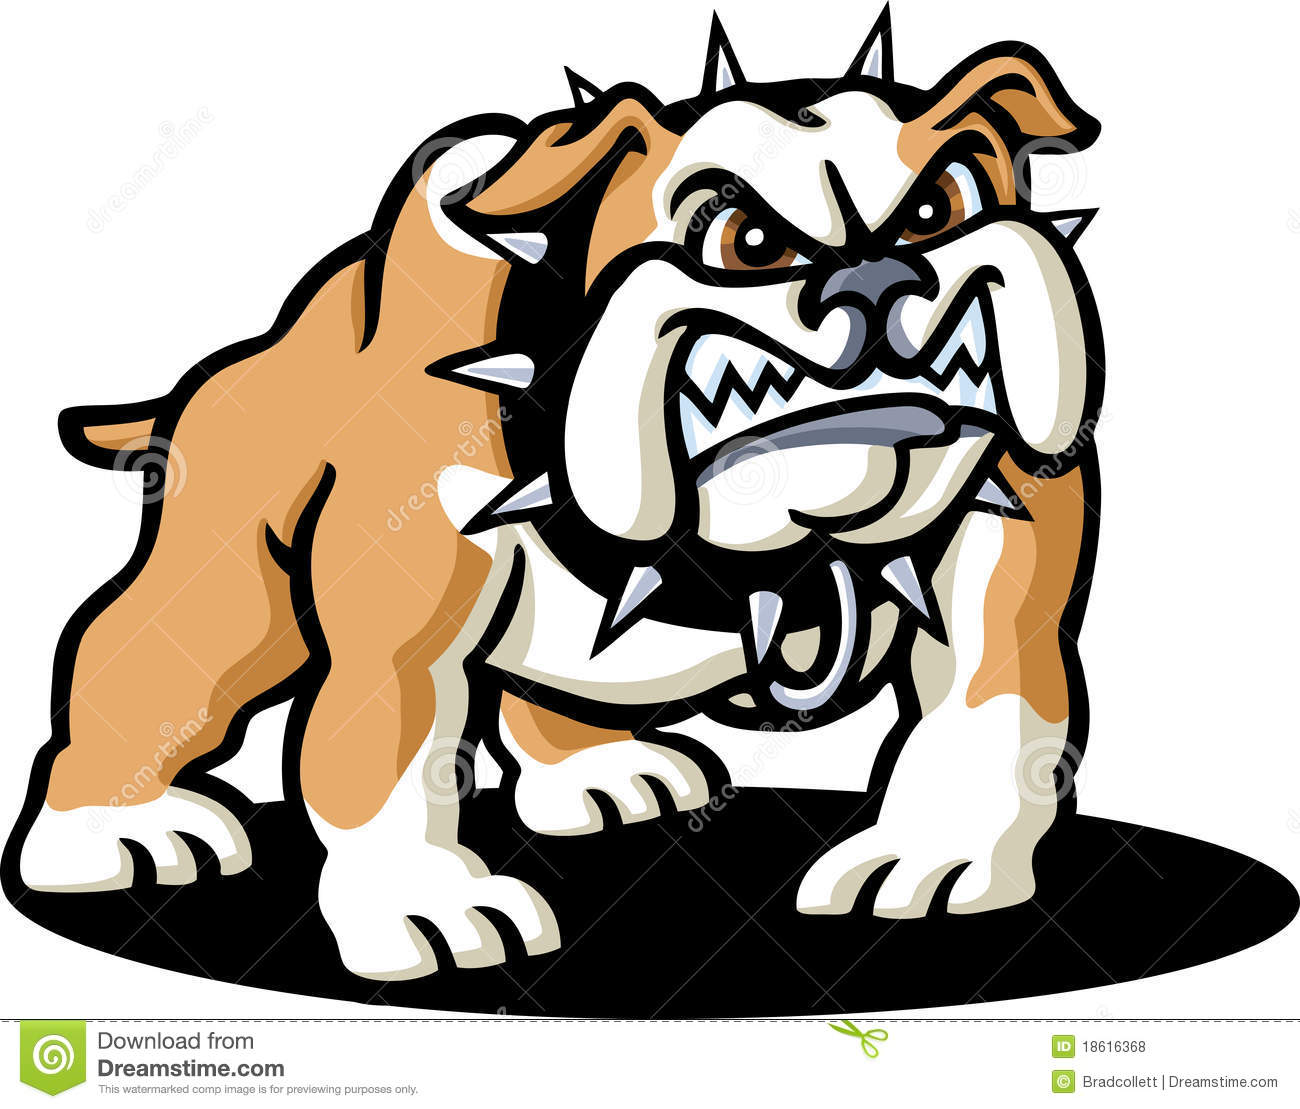 Scary small dog clipart picture free stock Scared bulldog clipart - ClipartFest picture free stock